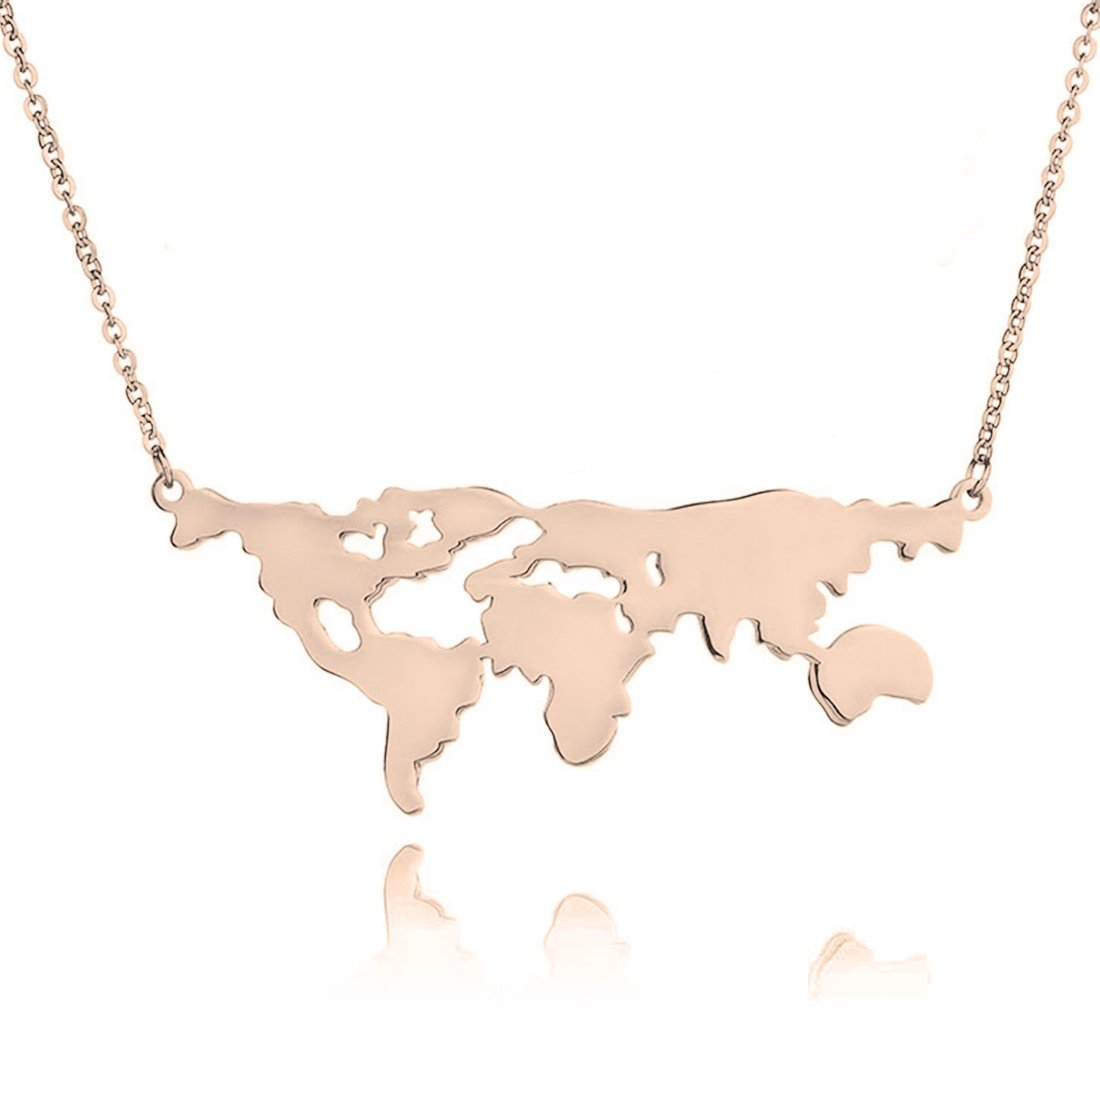 WUSUANED Stainless Steel World Map Necklace World Continents Jewelry Travel Gift for Women Men (world map necklace rose gold)